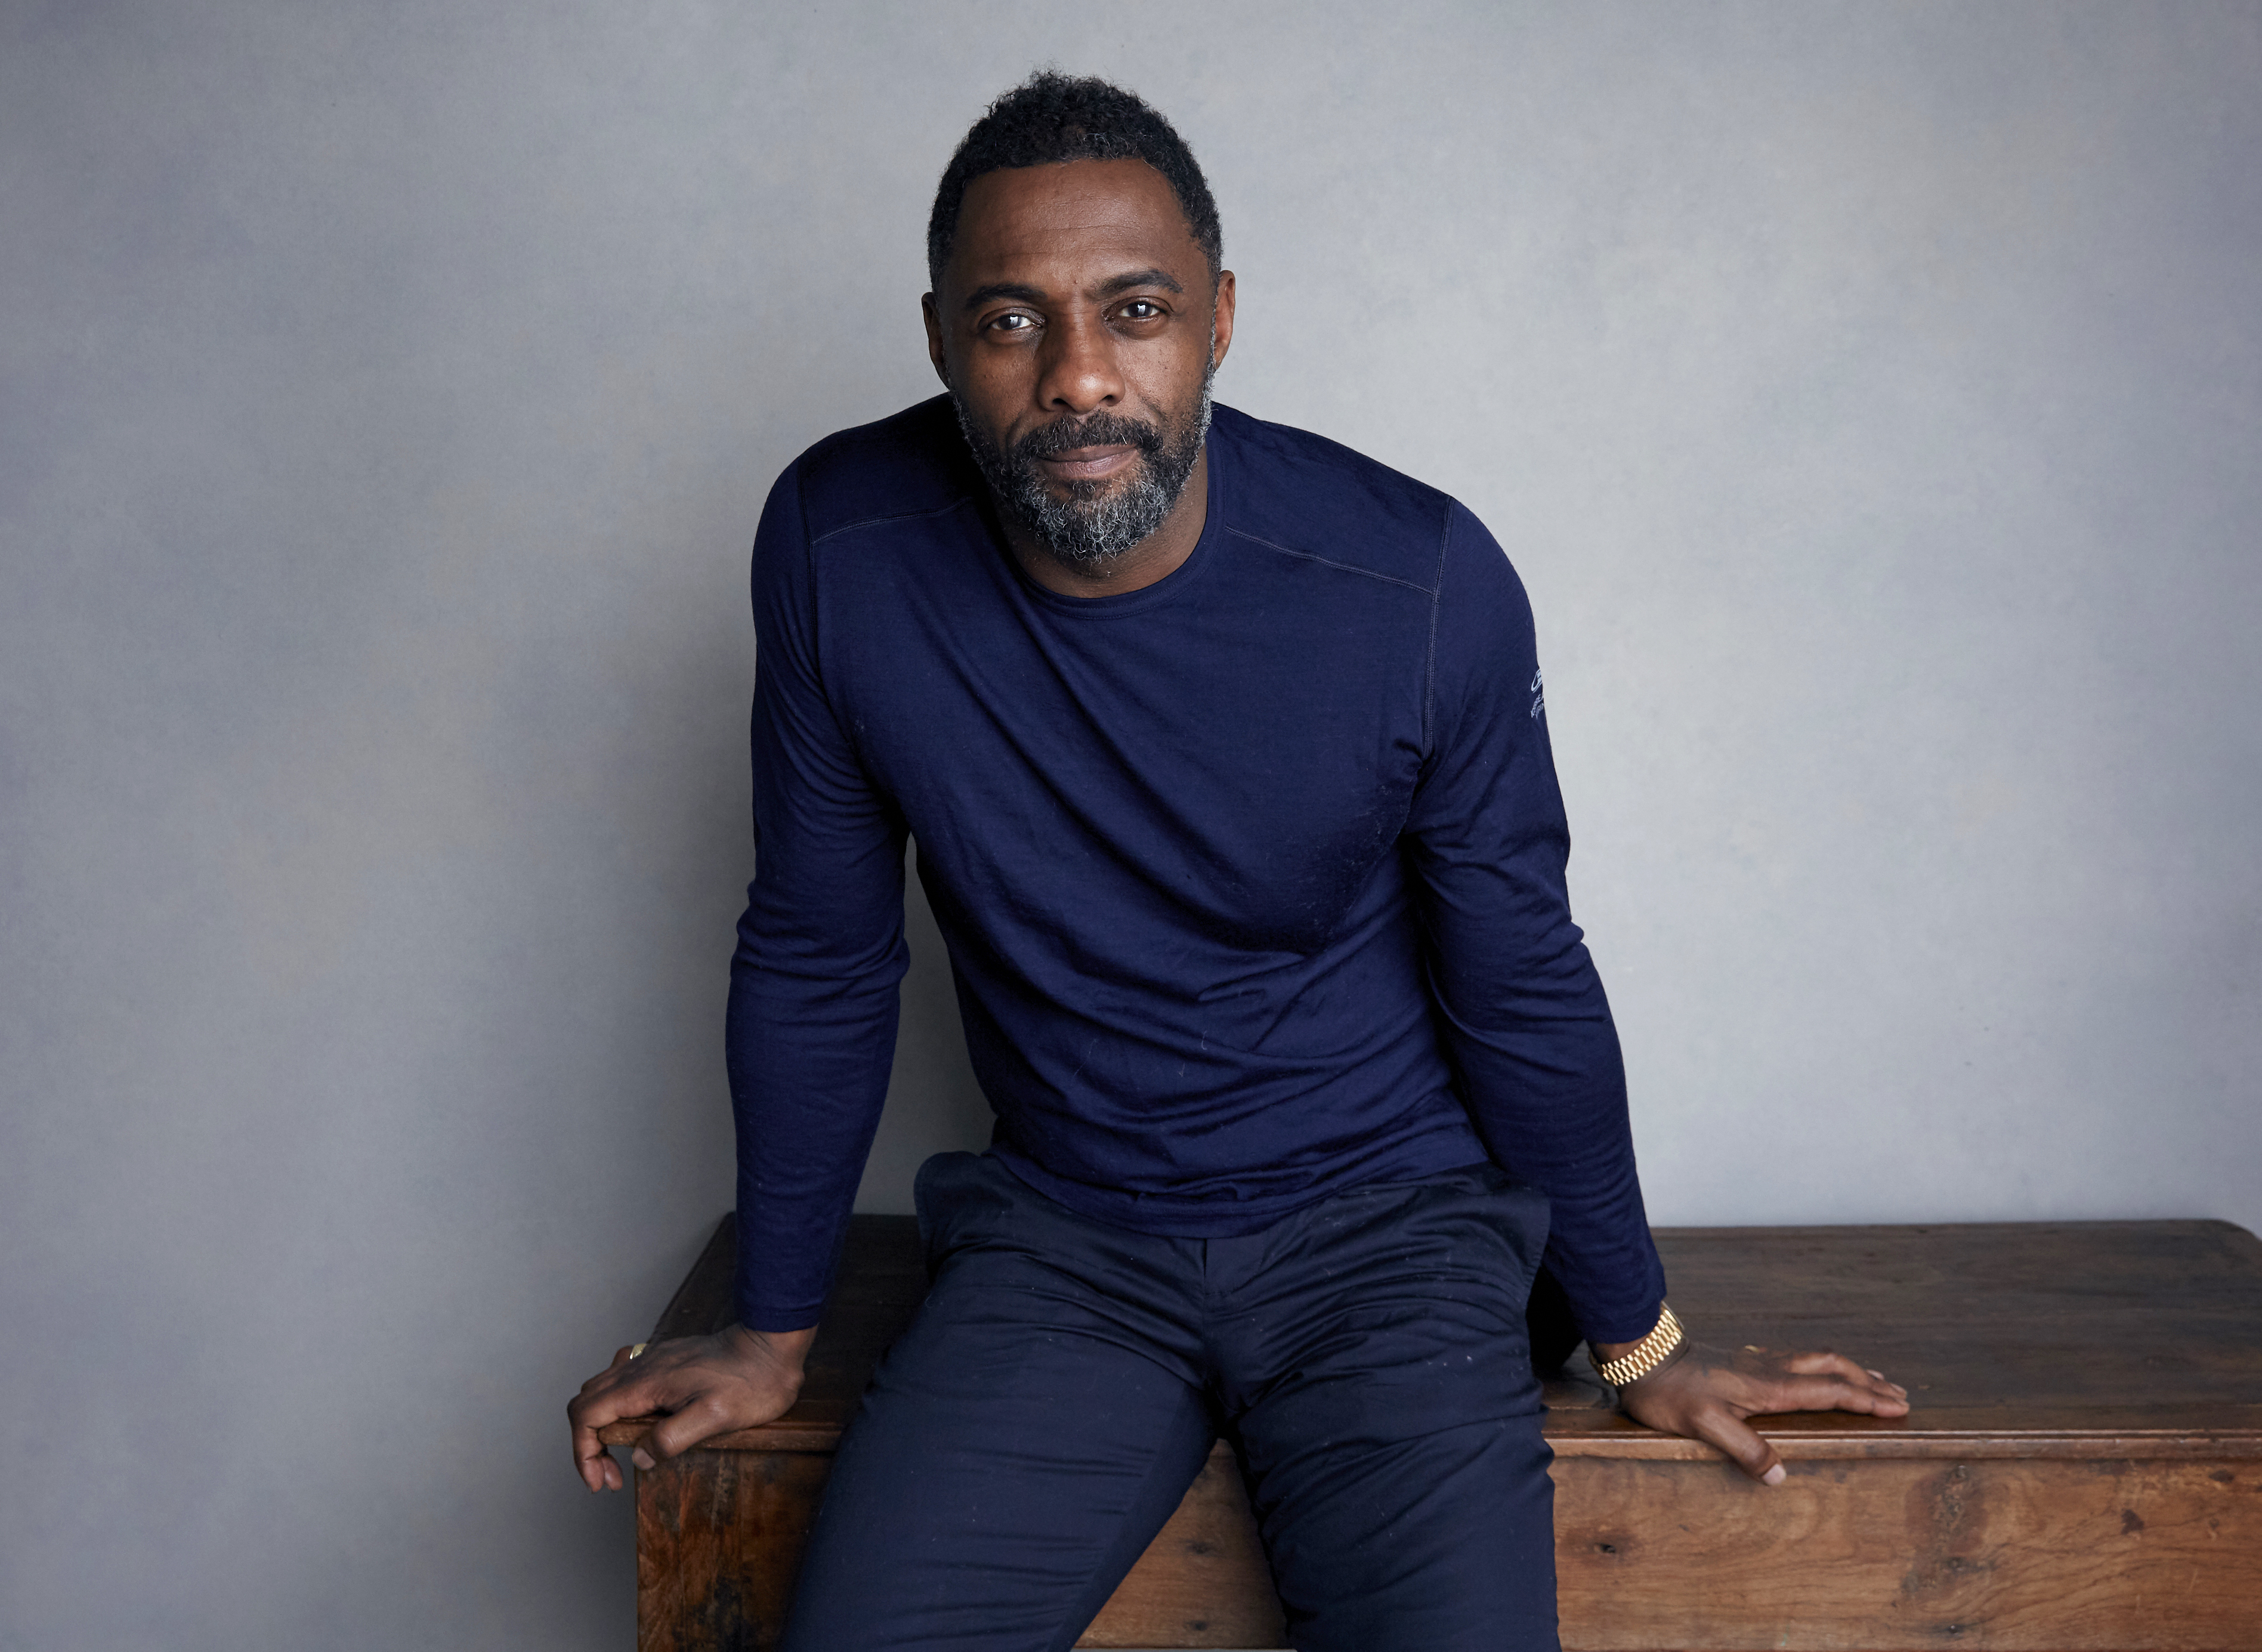 Idris Elba named People's Sexiest Man Alive for 2018